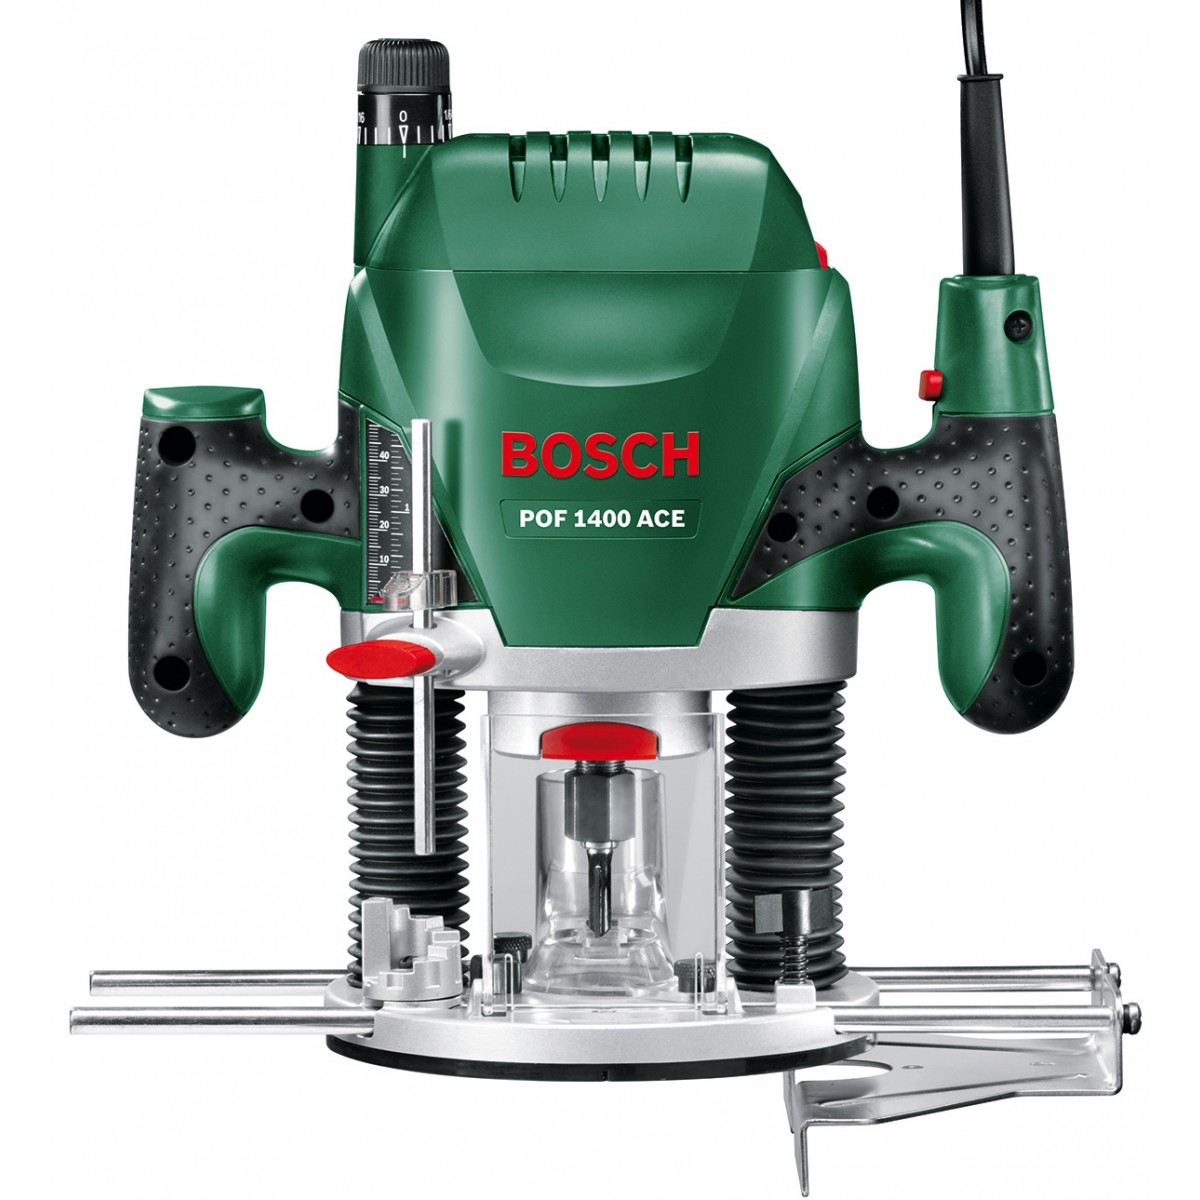 bosch green pof 1400 ace 240v plunge router 1 4 collet howe tools uk. Black Bedroom Furniture Sets. Home Design Ideas